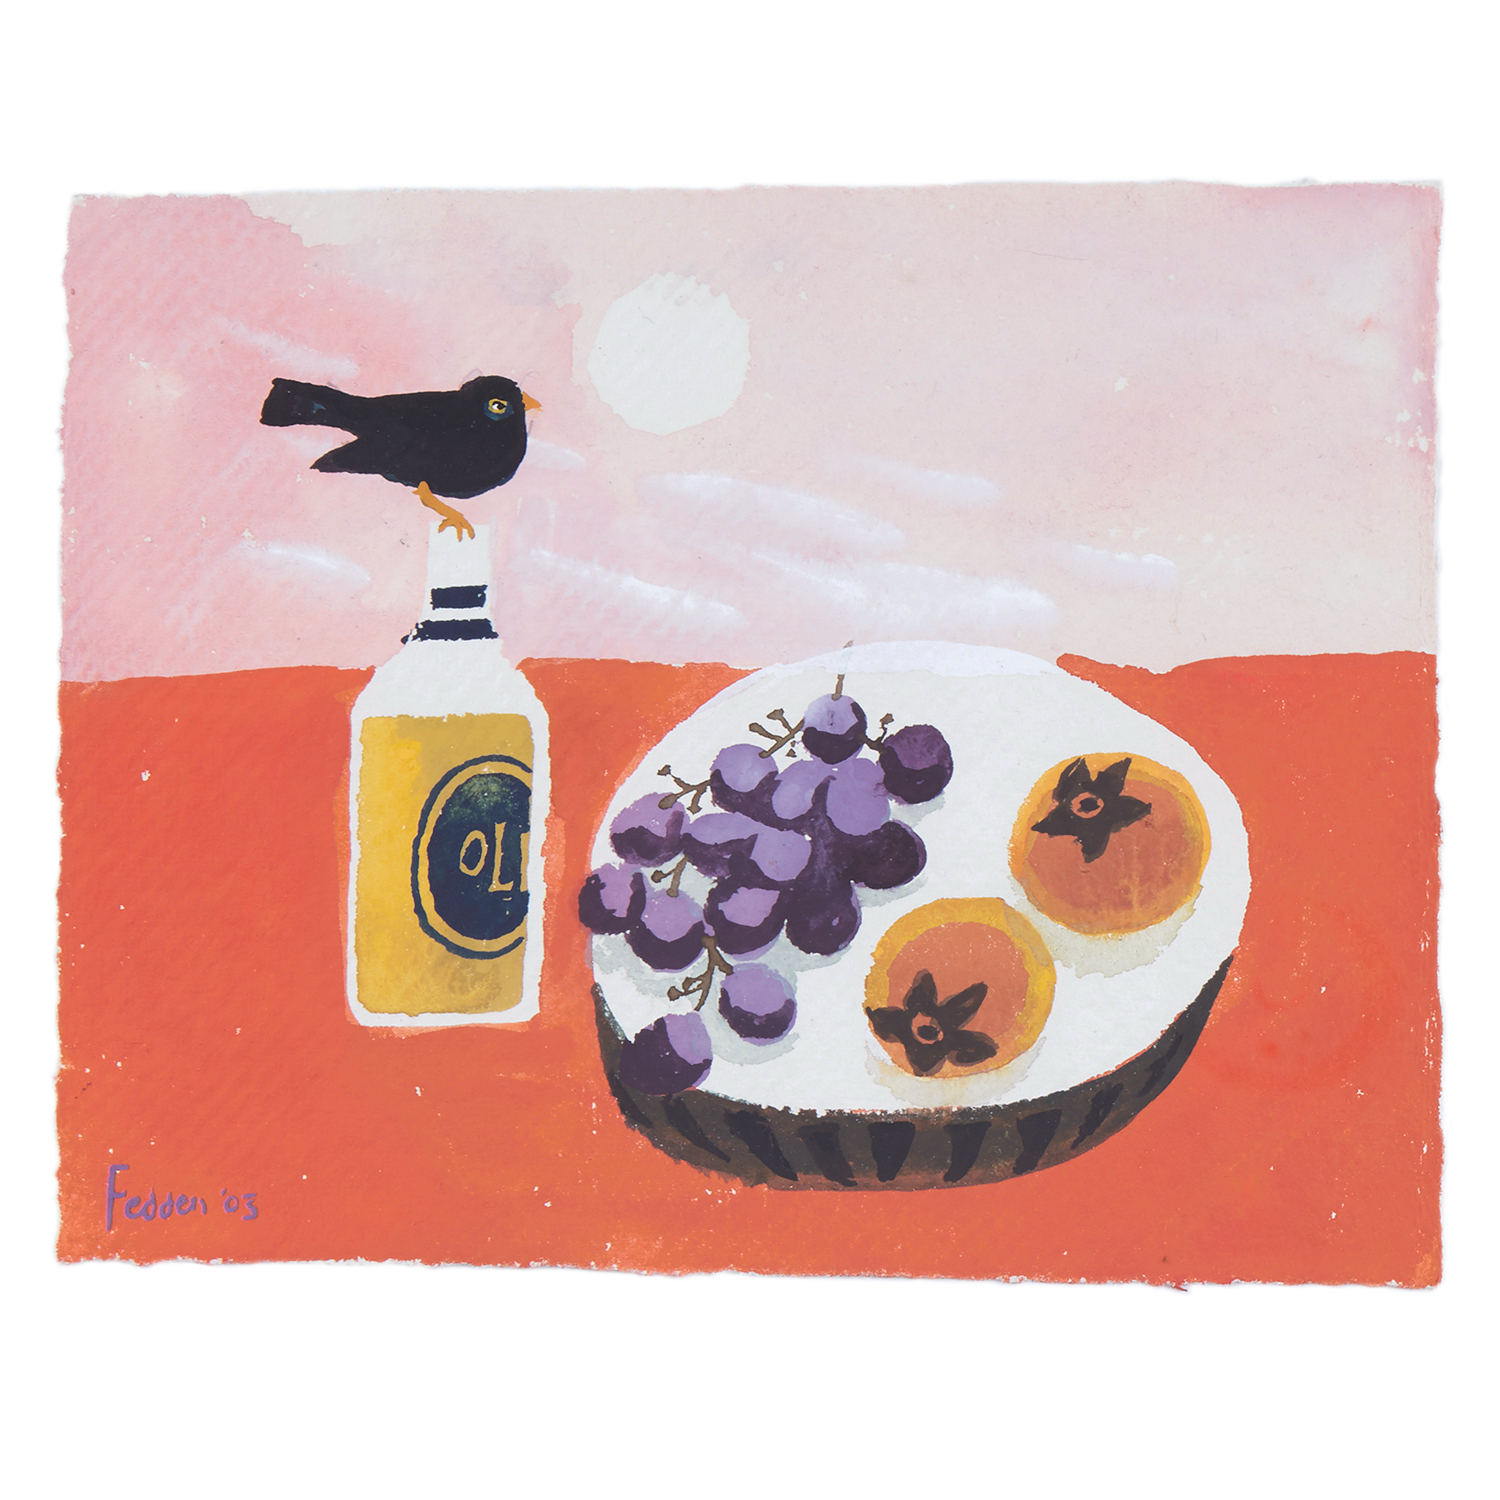 MARY FEDDEN. THE BLACKBIRD. 2003. SOLD